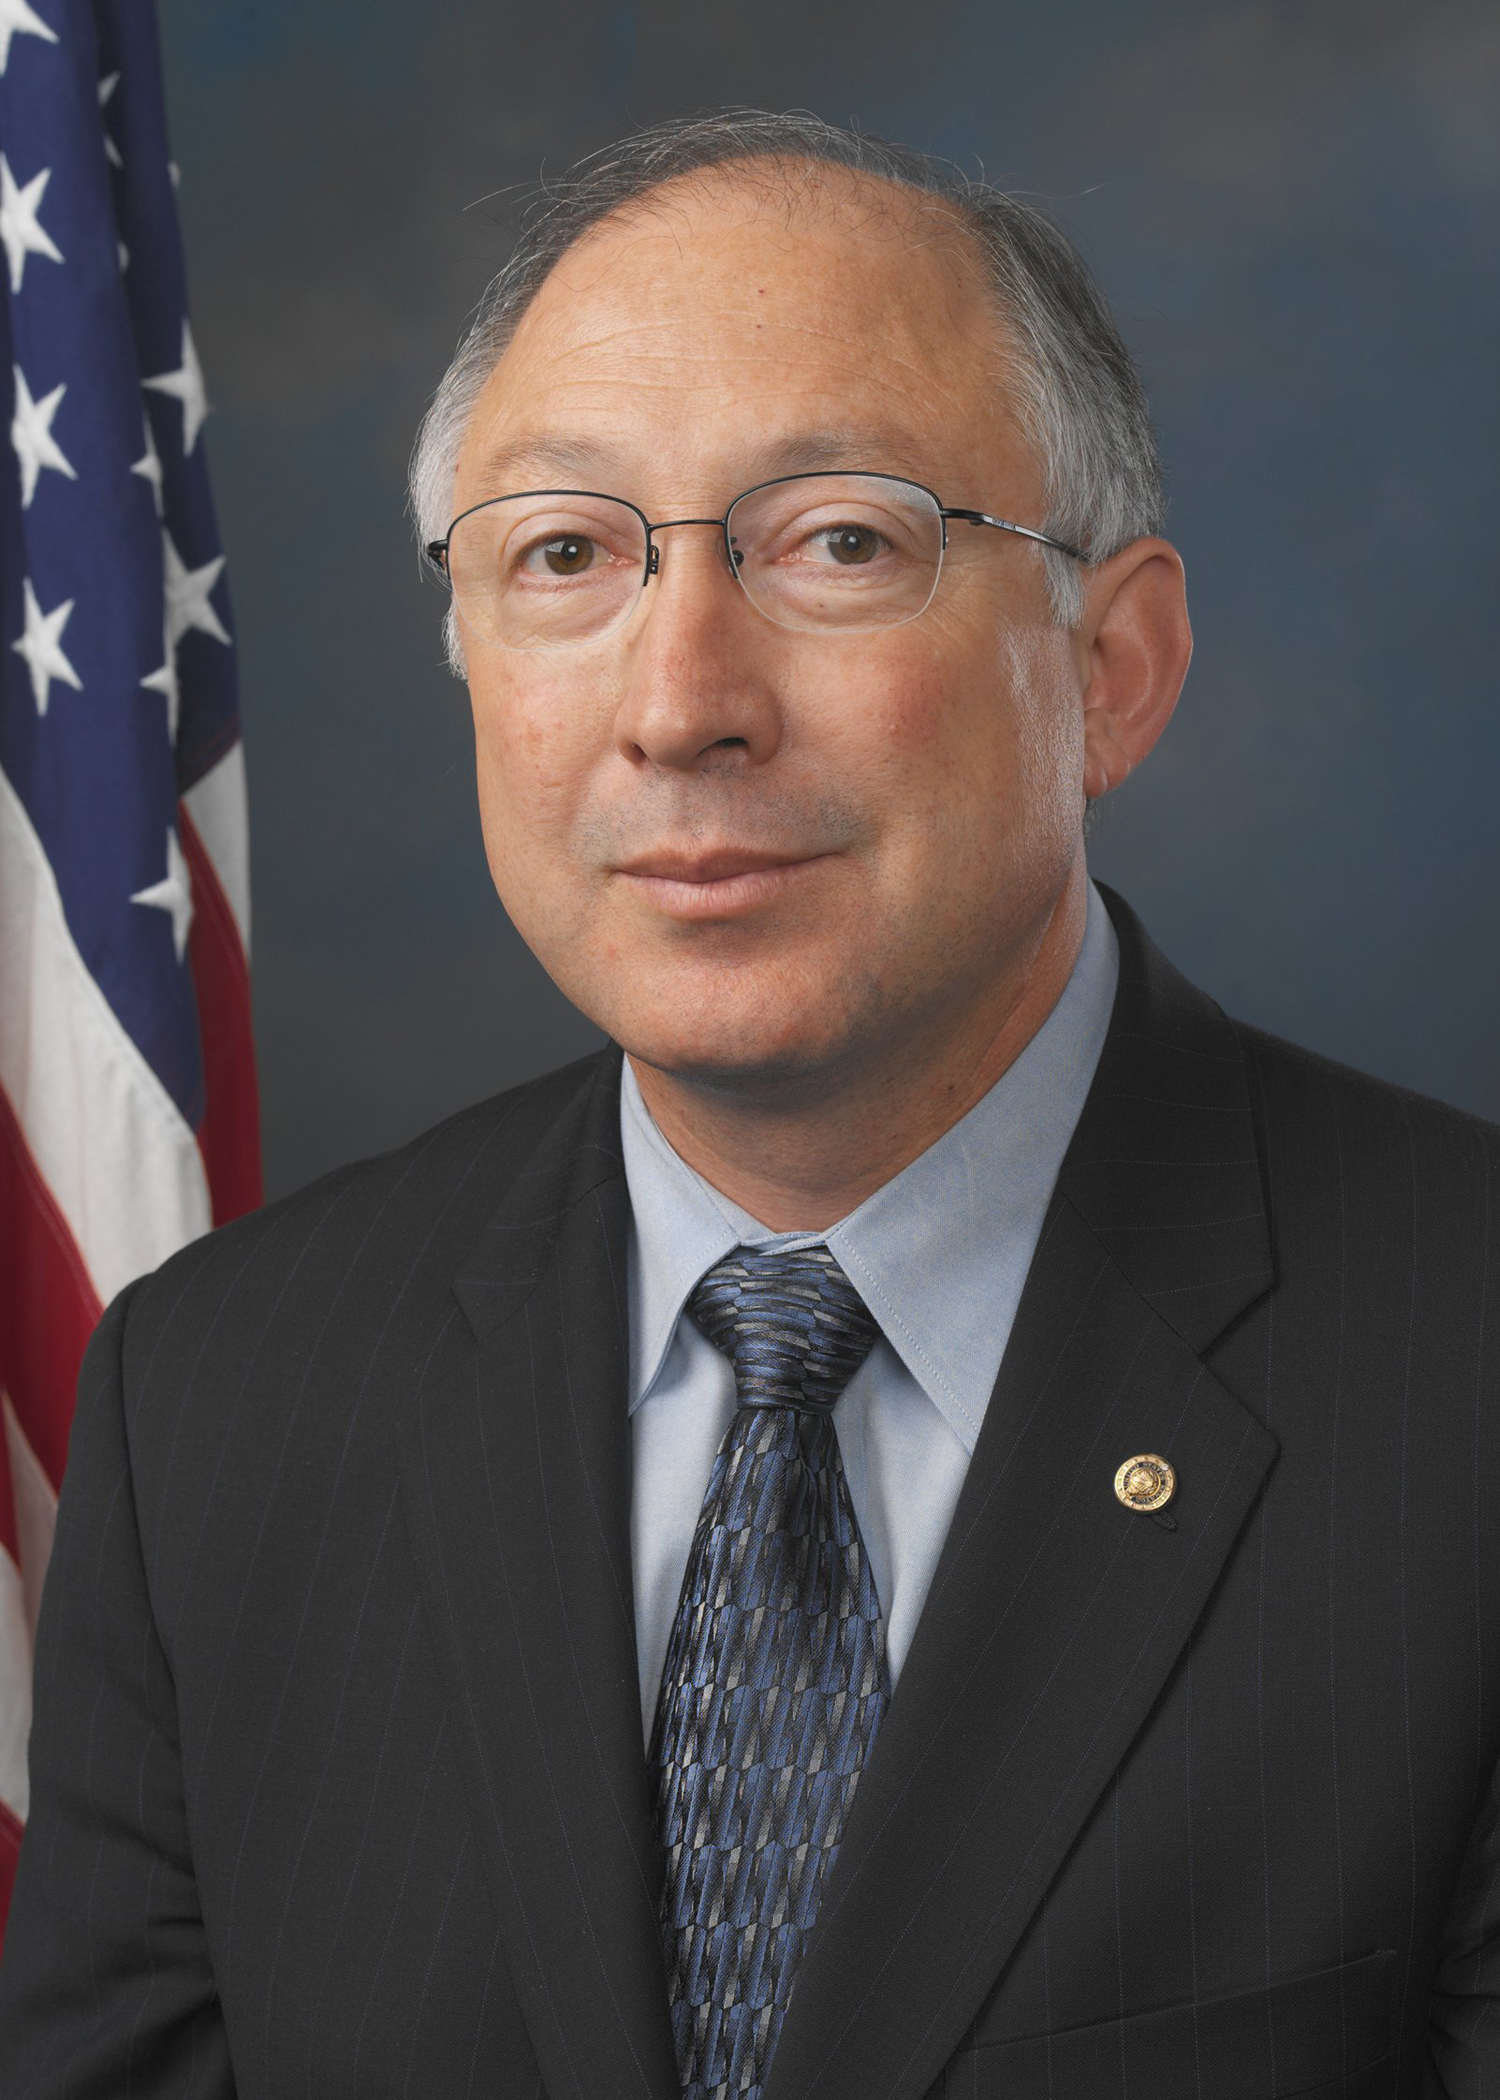 Ken Salazar, United States Secretary of the Interior.